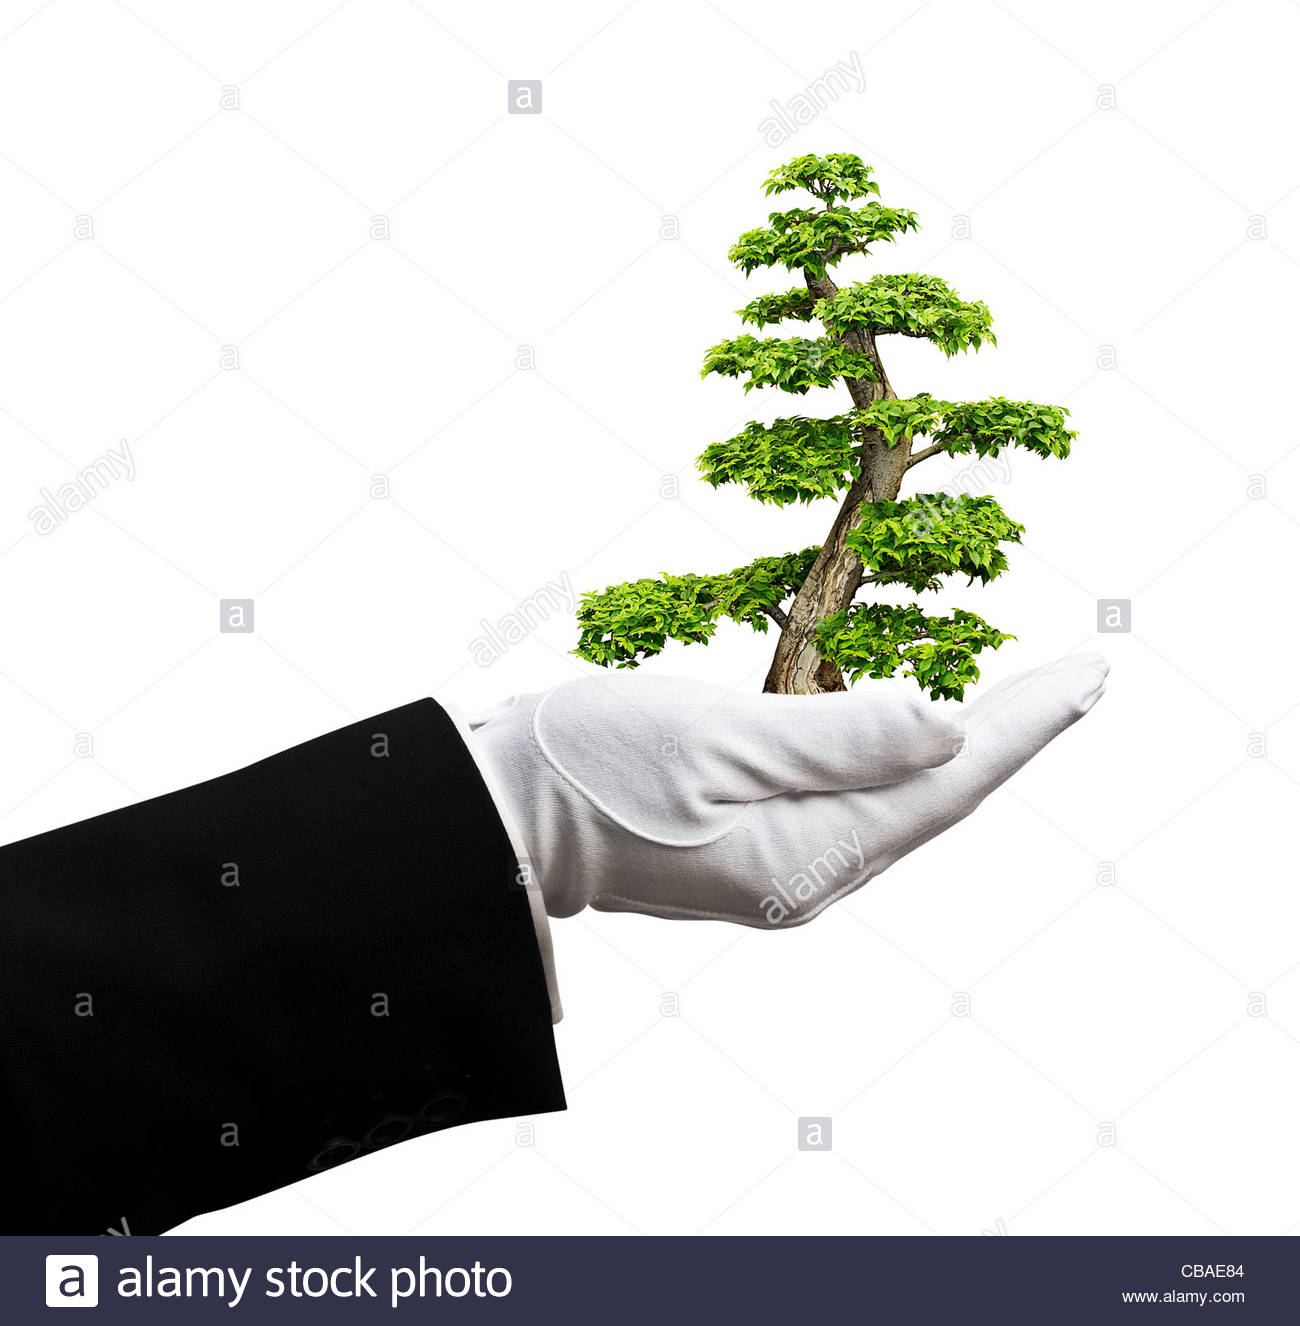 tree in hand - Stock Image